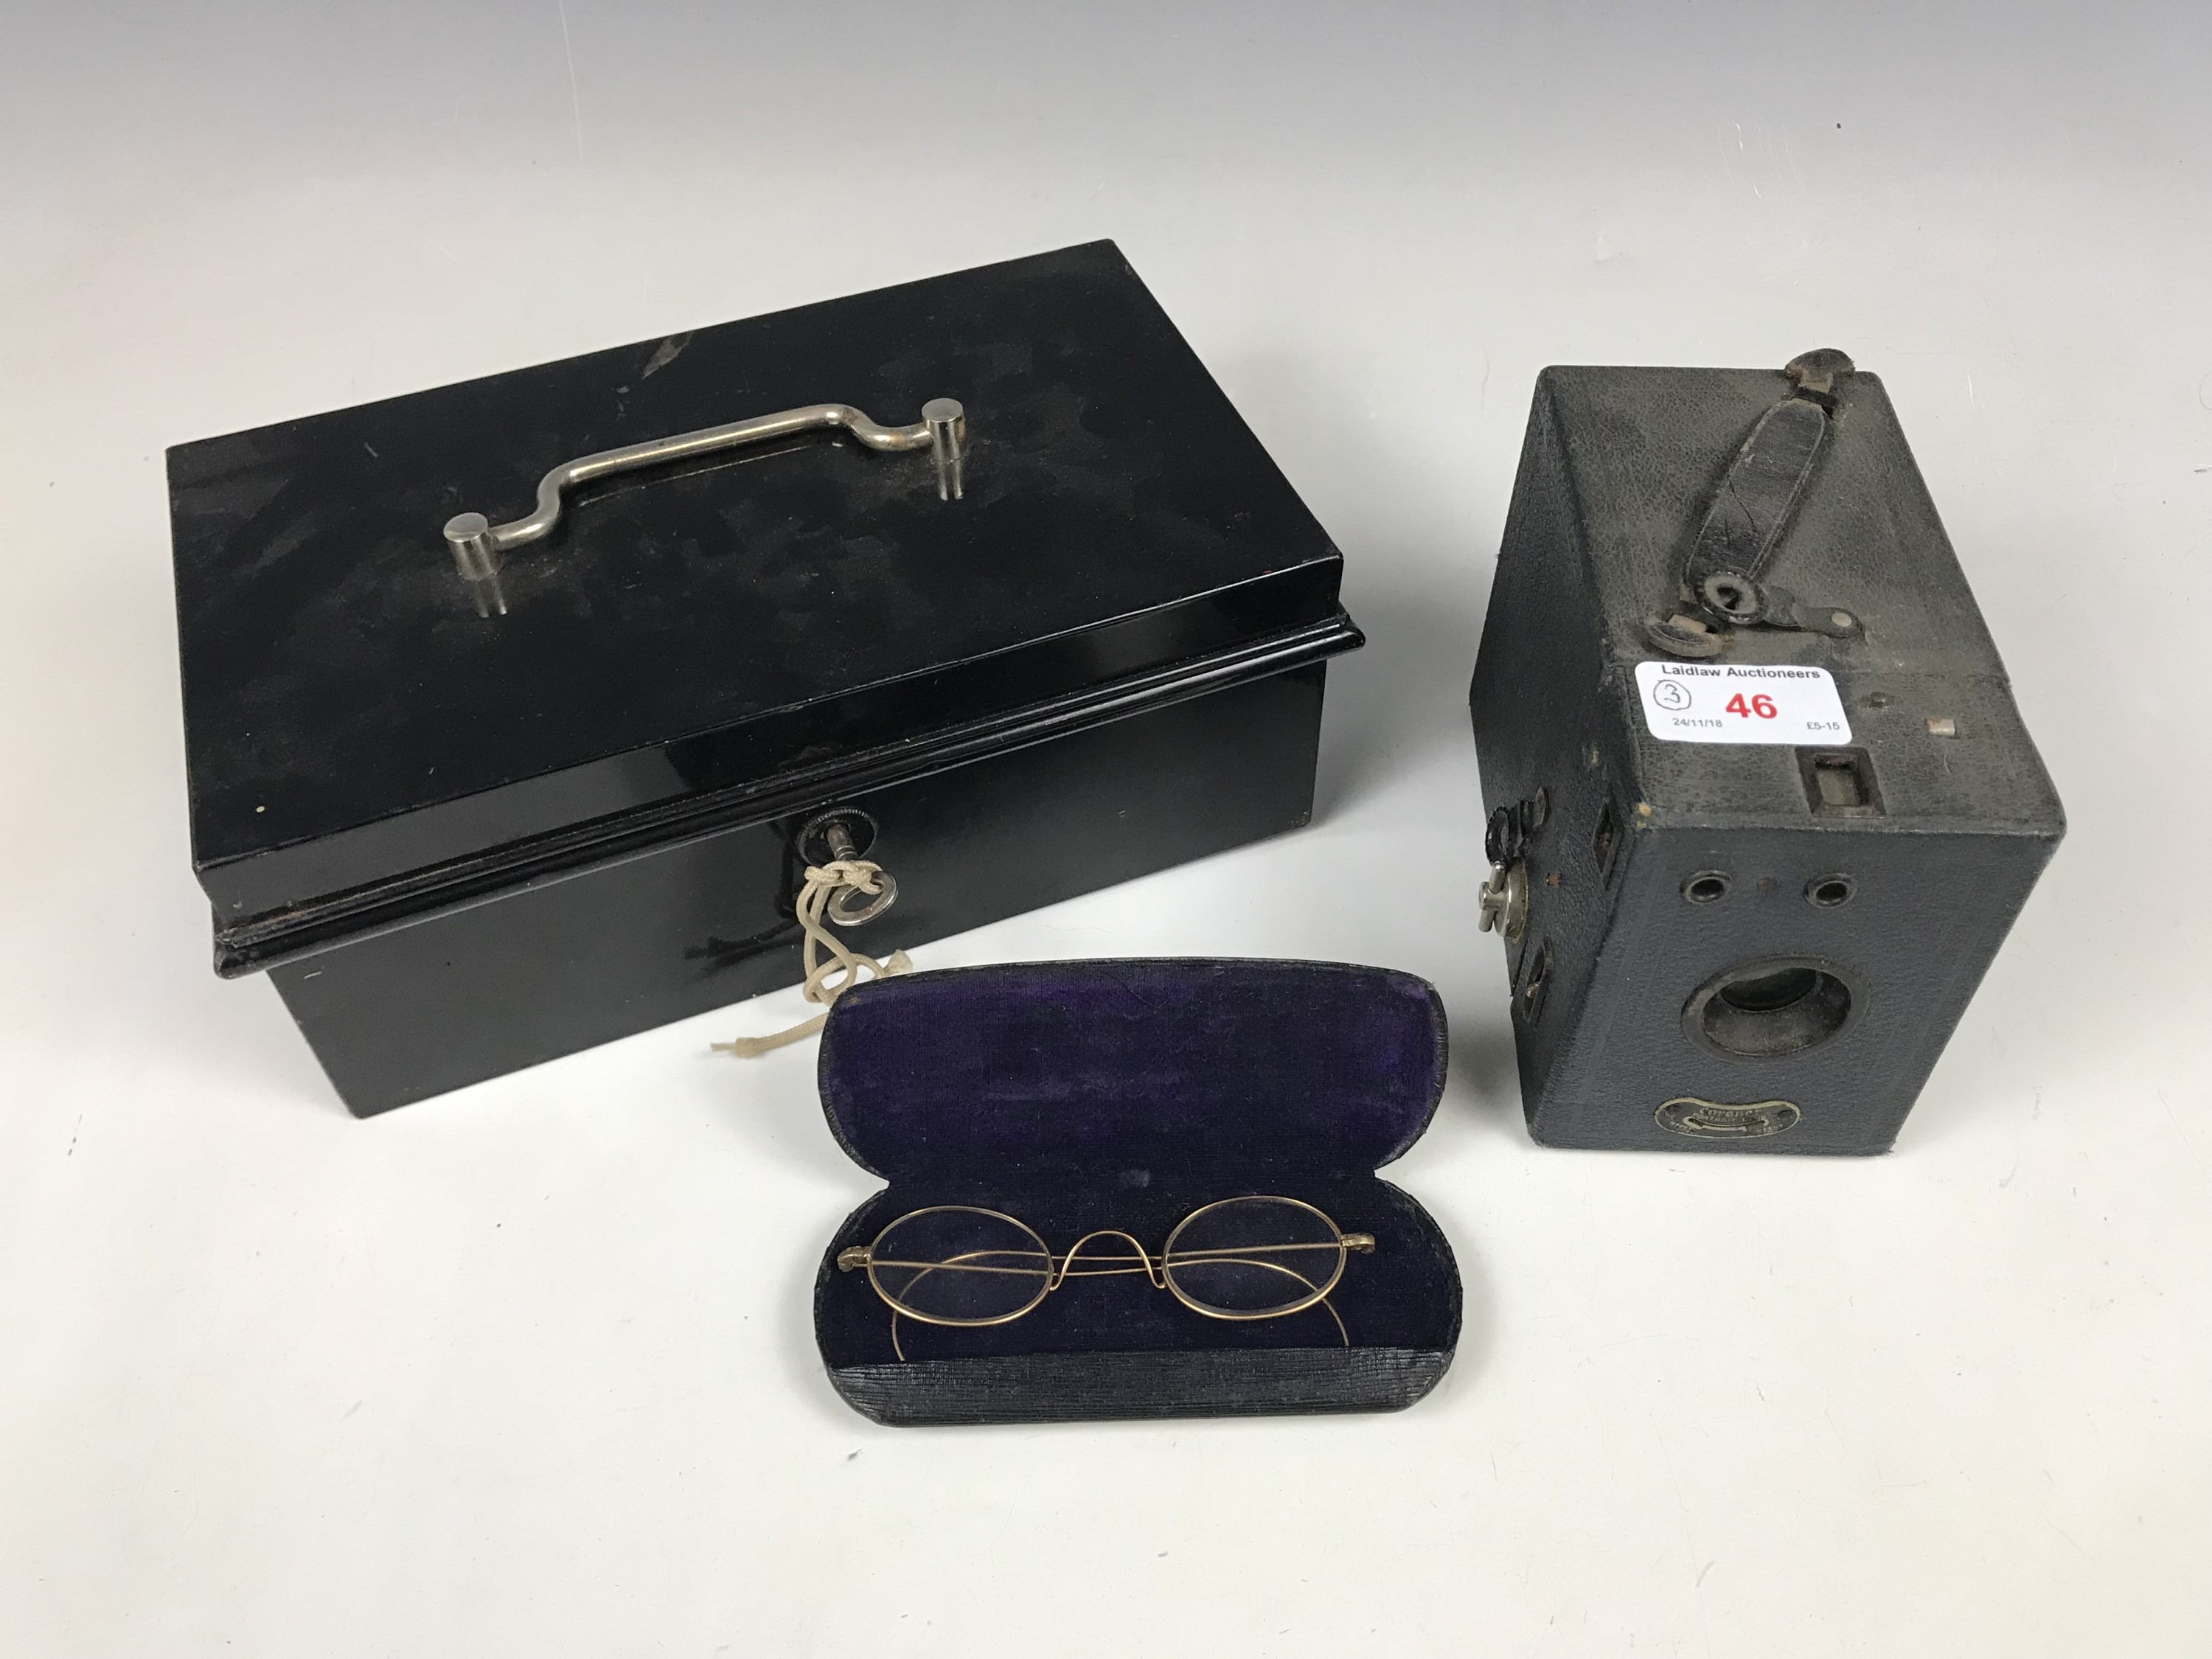 Lot 46 - Collectors' items including a Veteran Series metal cash tin together with pince-nez glasses and a